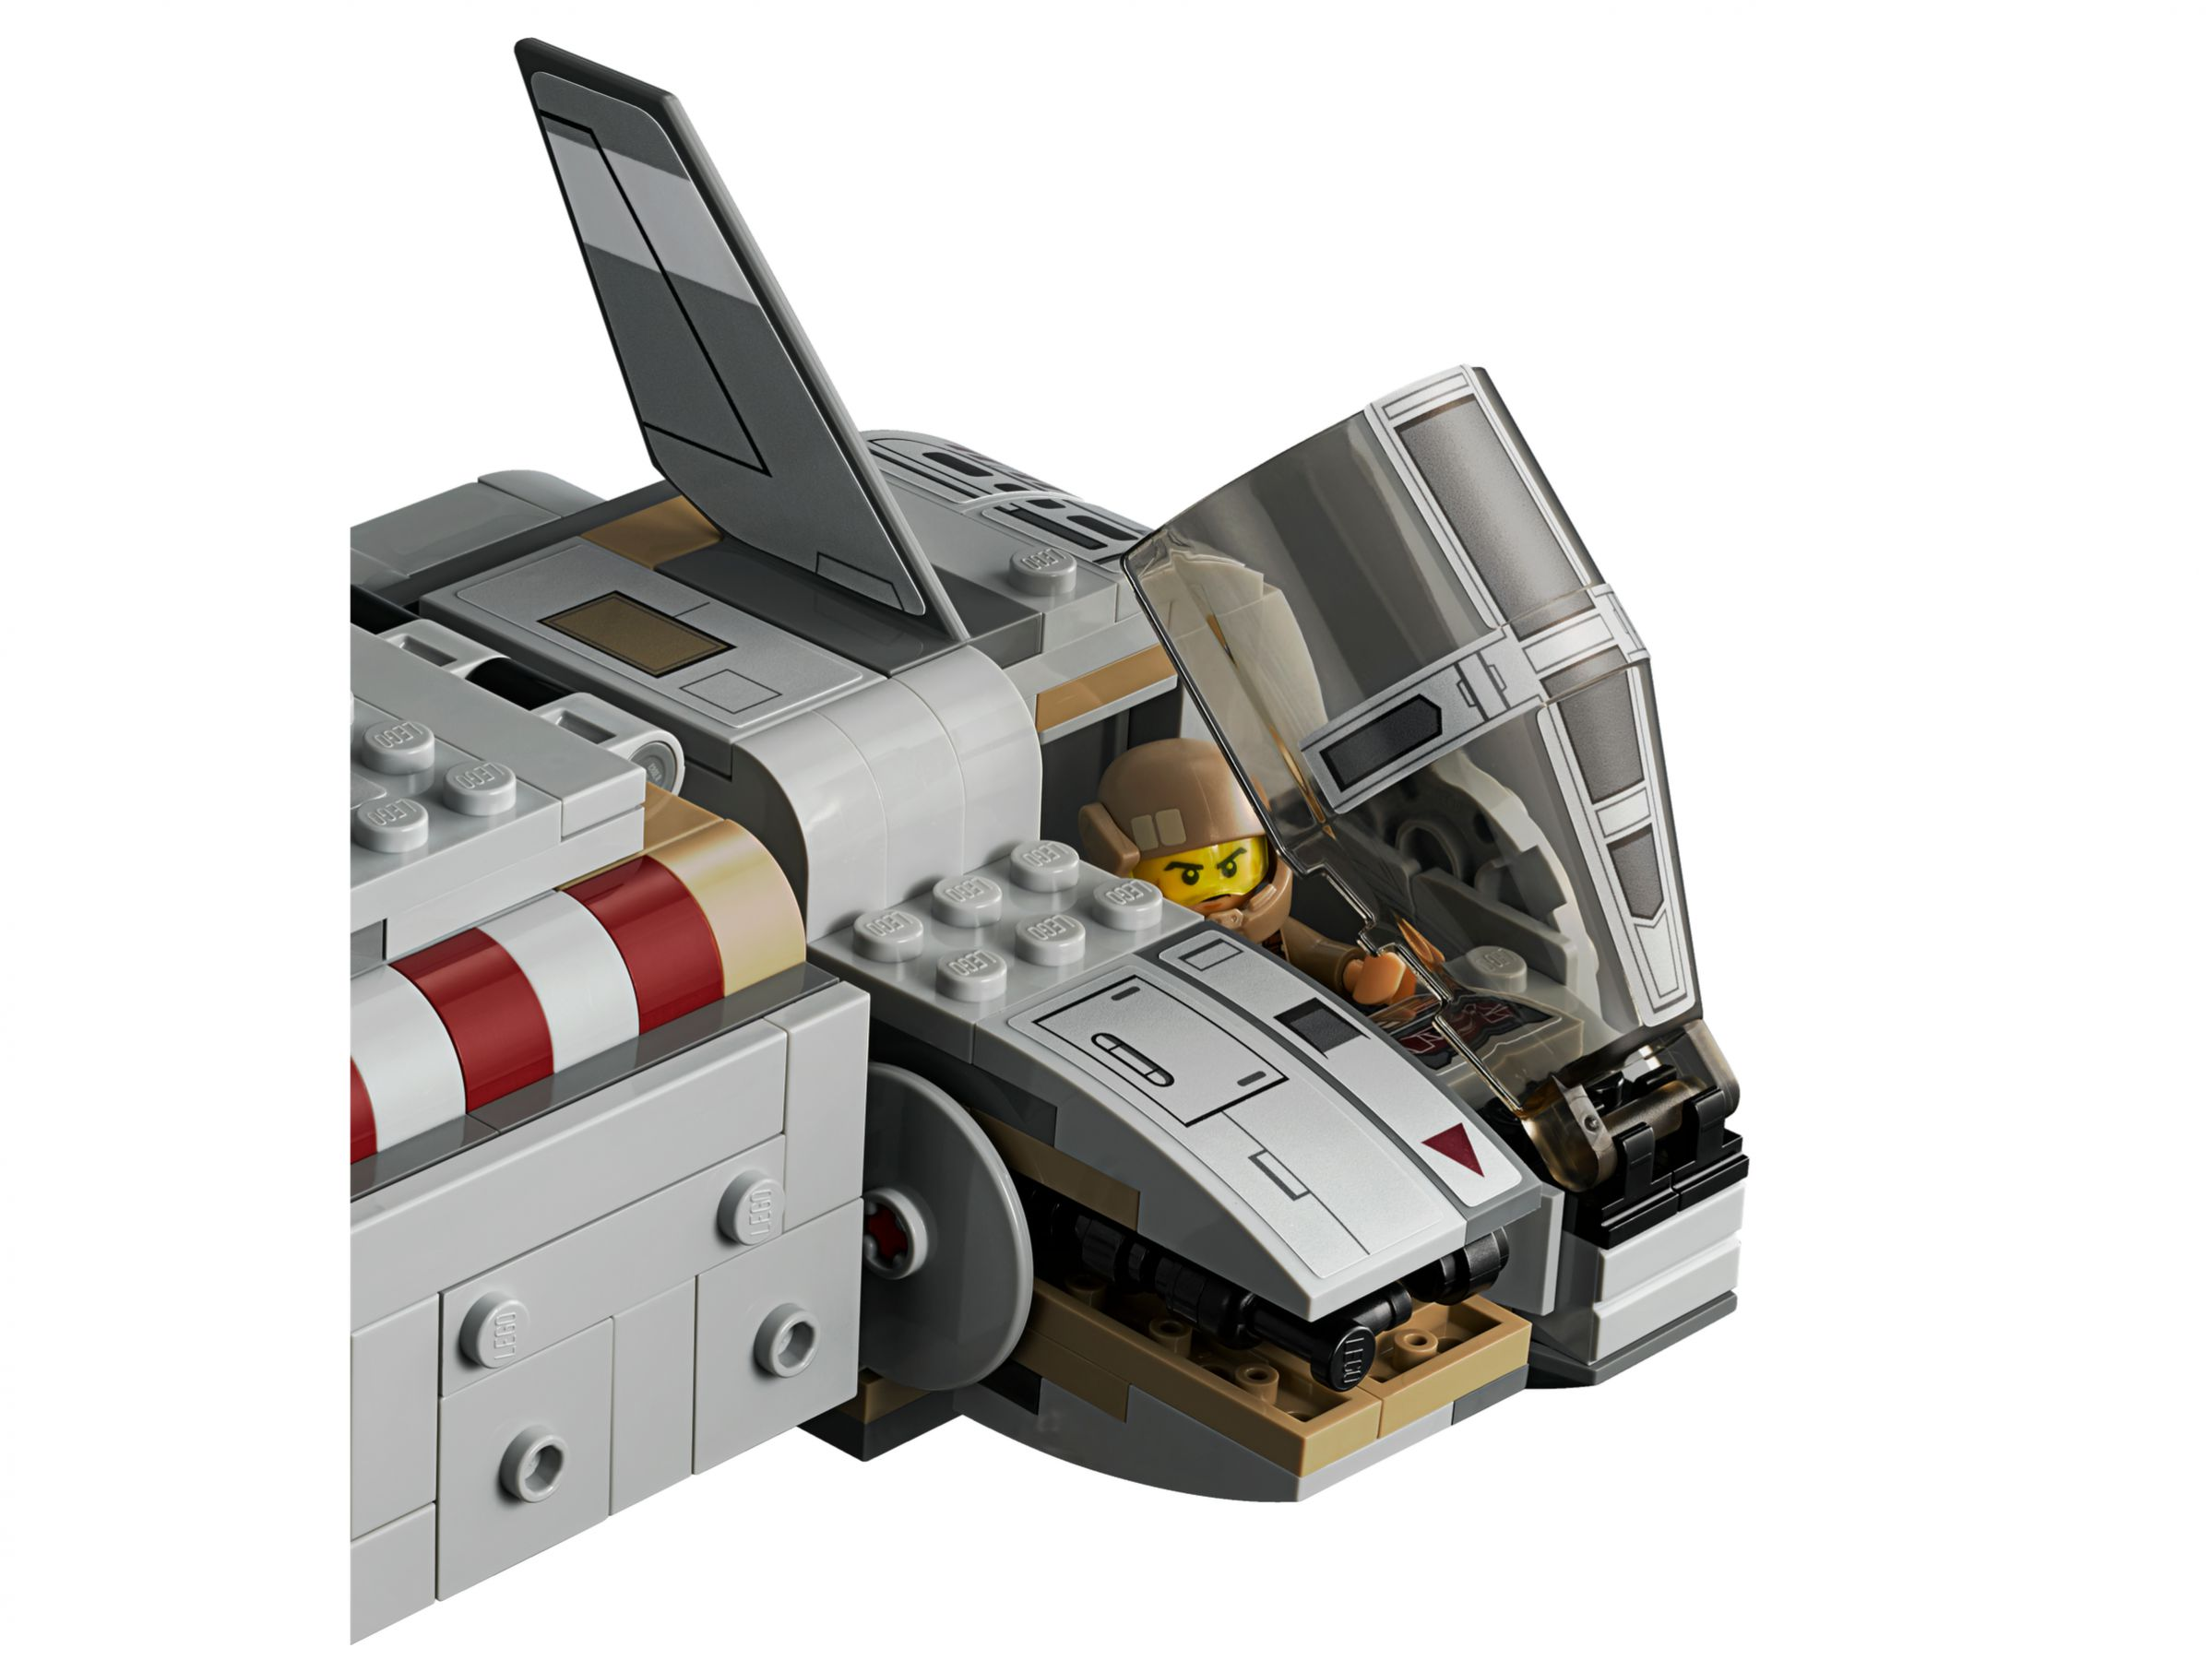 LEGO Star Wars 75140 Resistance Troop Transporter LEGO_75140_alt5.jpg